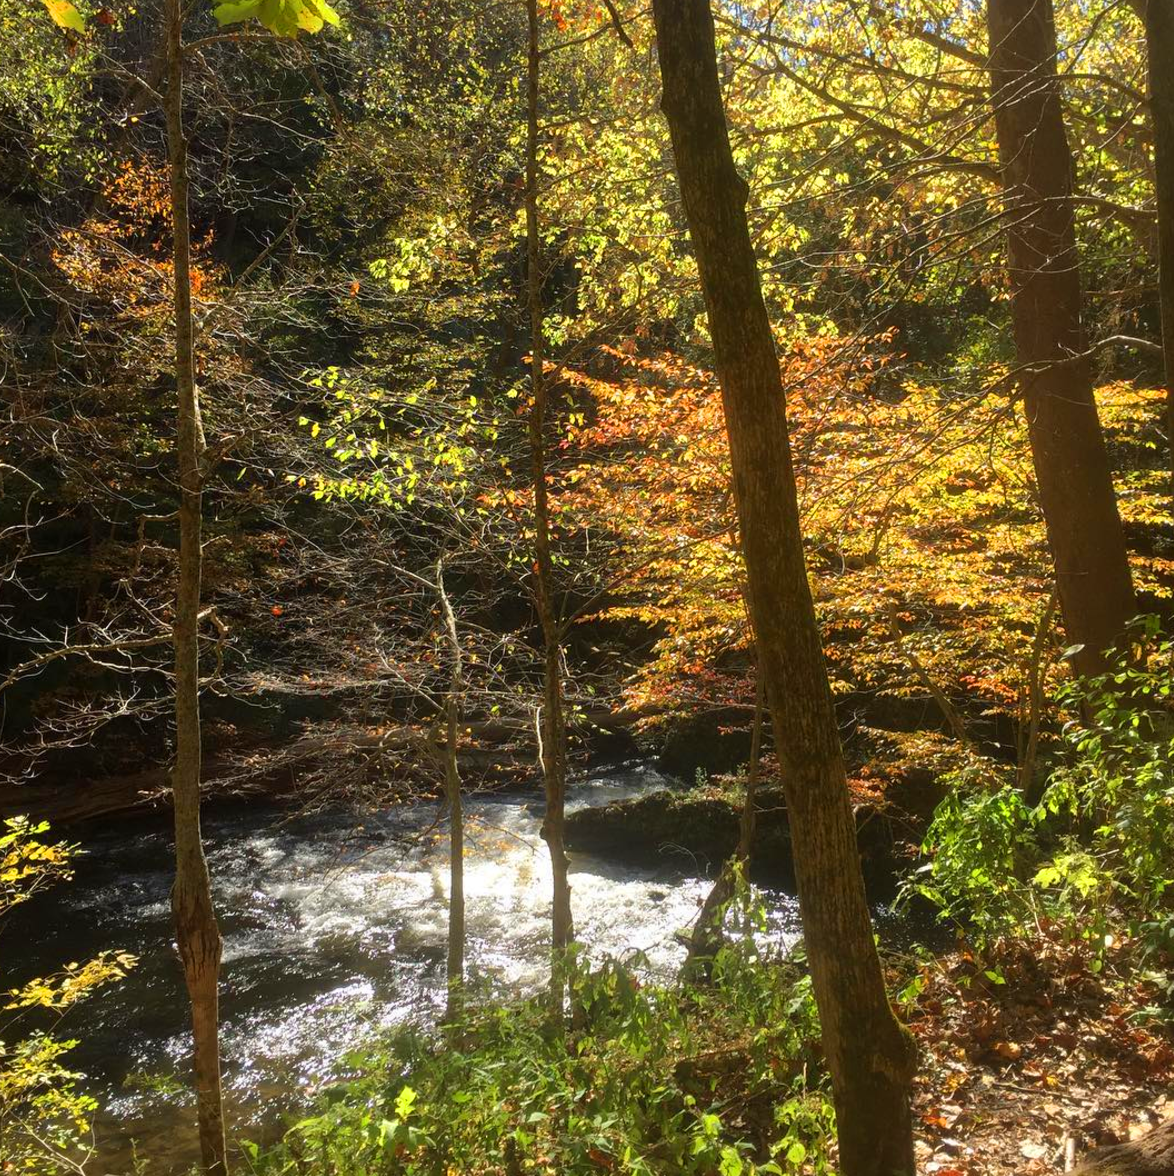 Photo by @thereselink at John Bryan State Park in Yellow Springs, Ohio